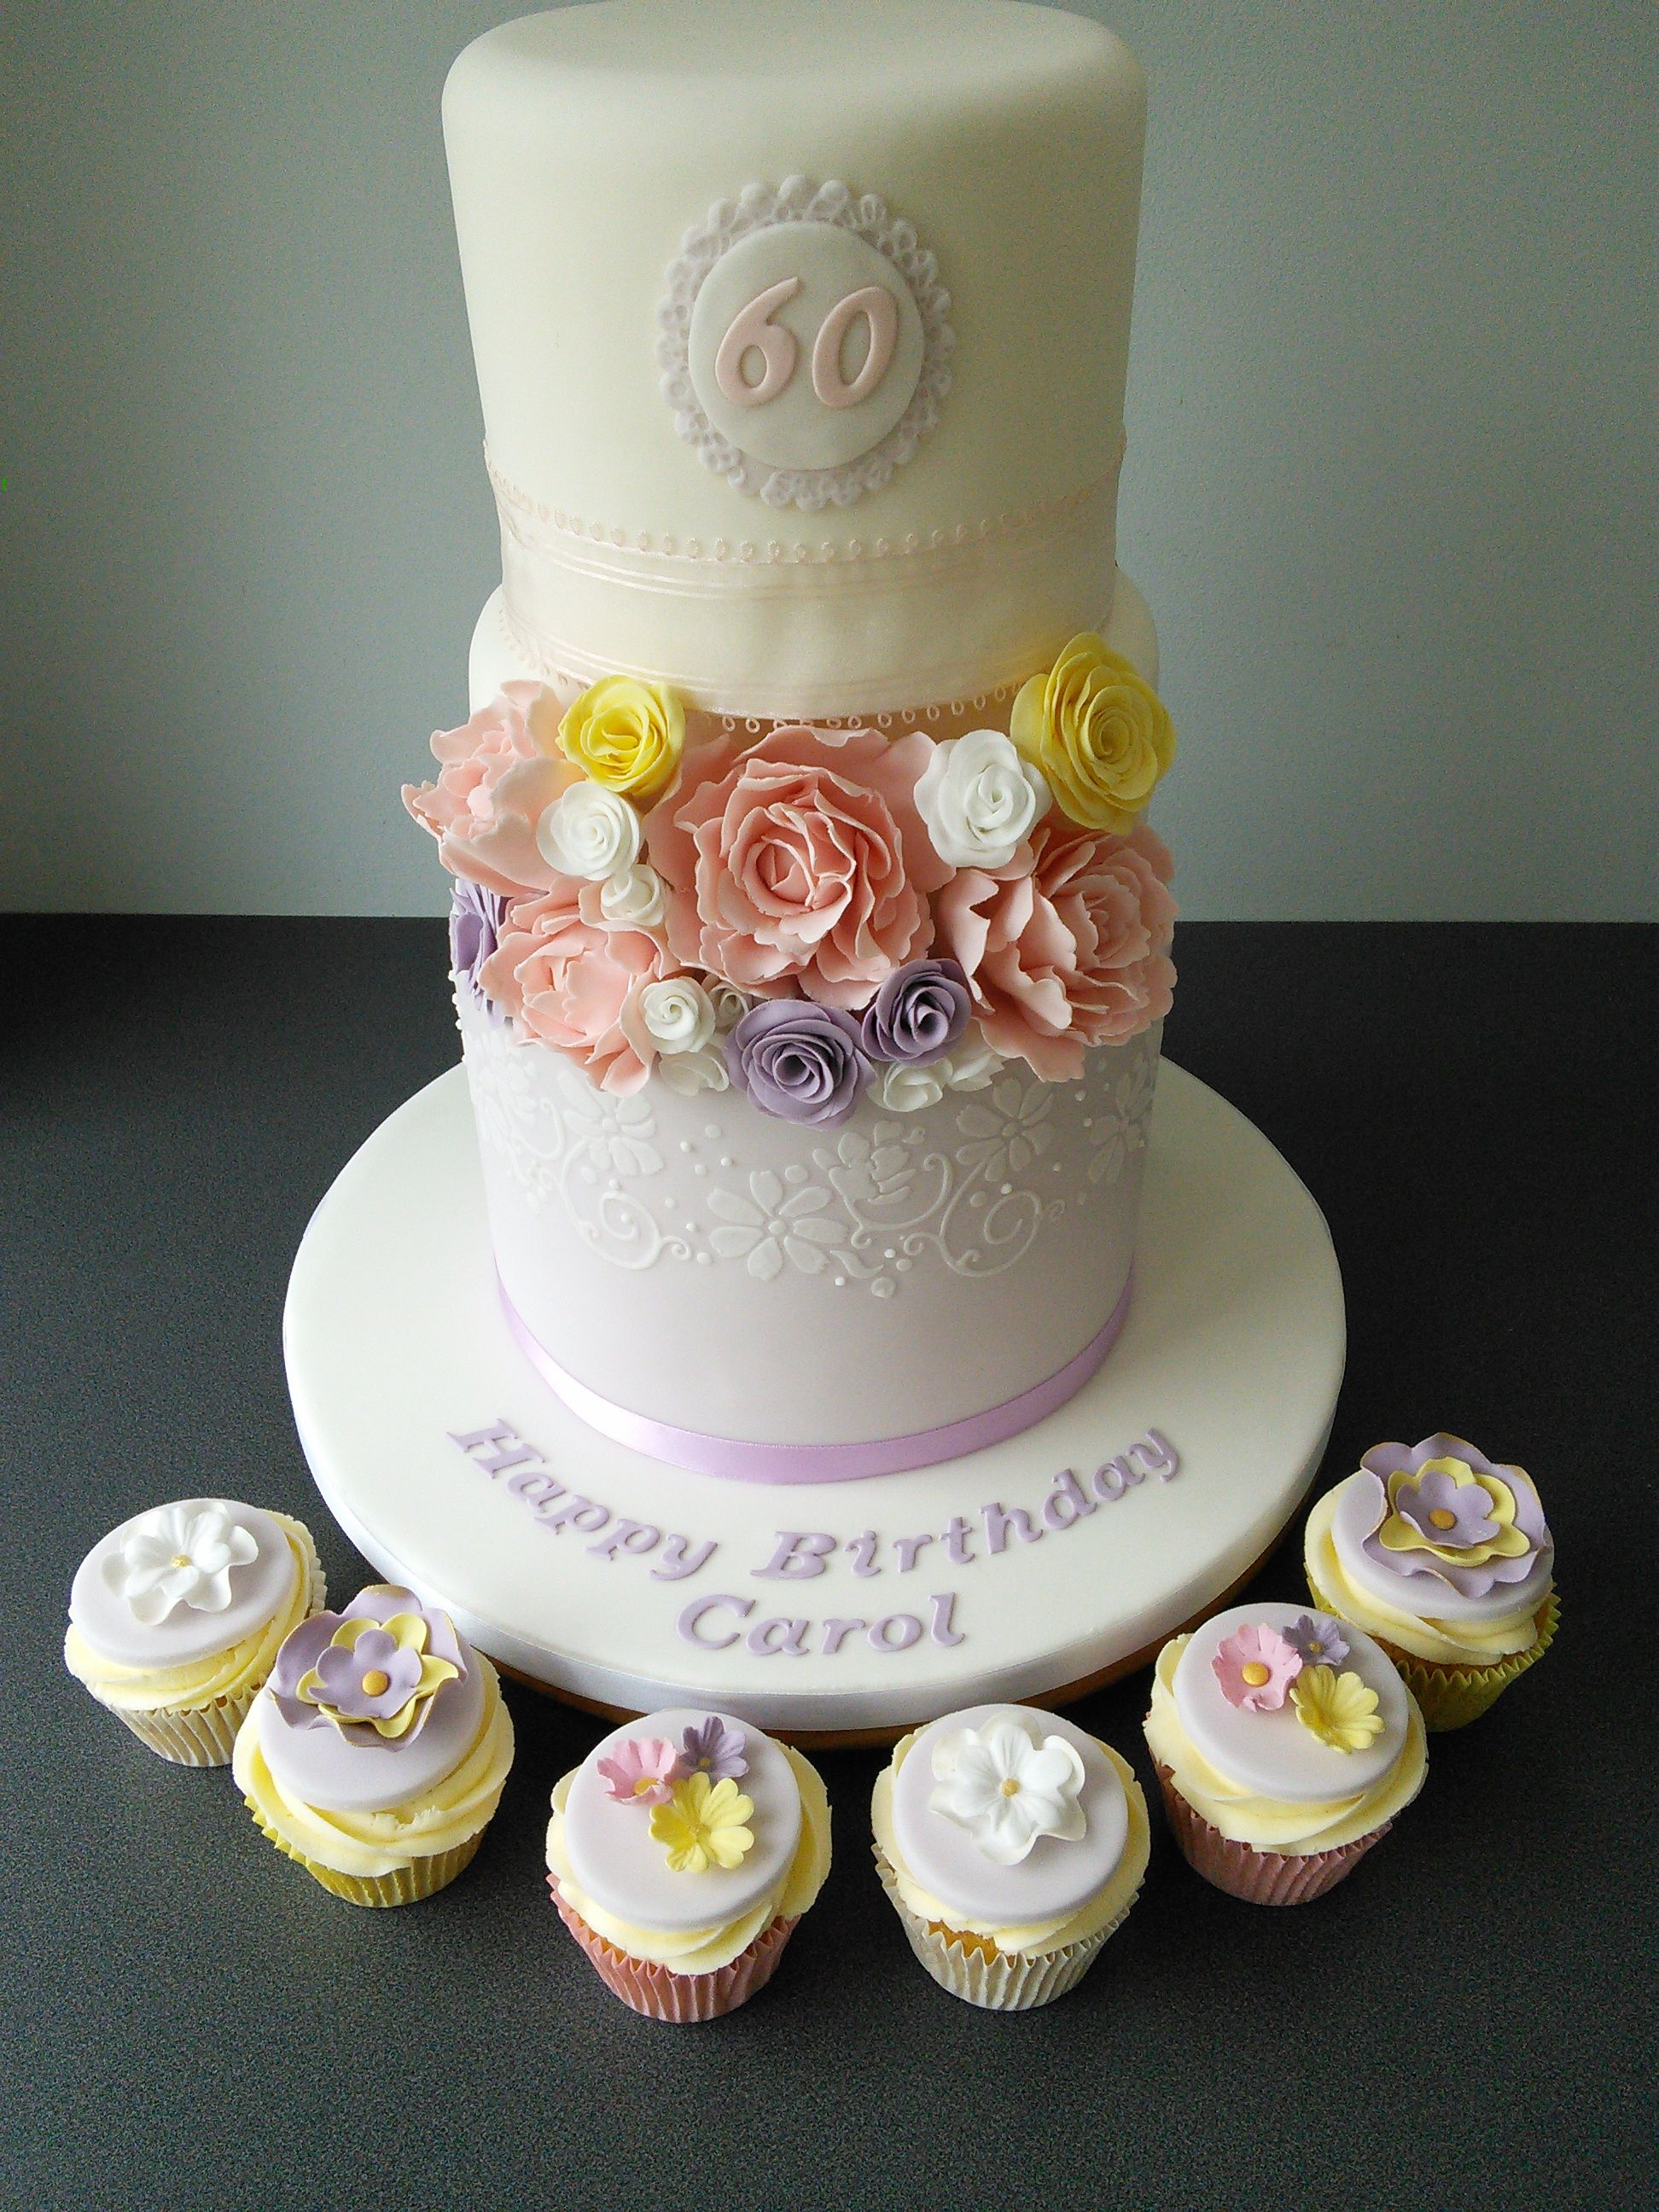 2 Tier 60th Birthday Cake With Lilac And Lace Flowers Matching Flowery Cupcakes